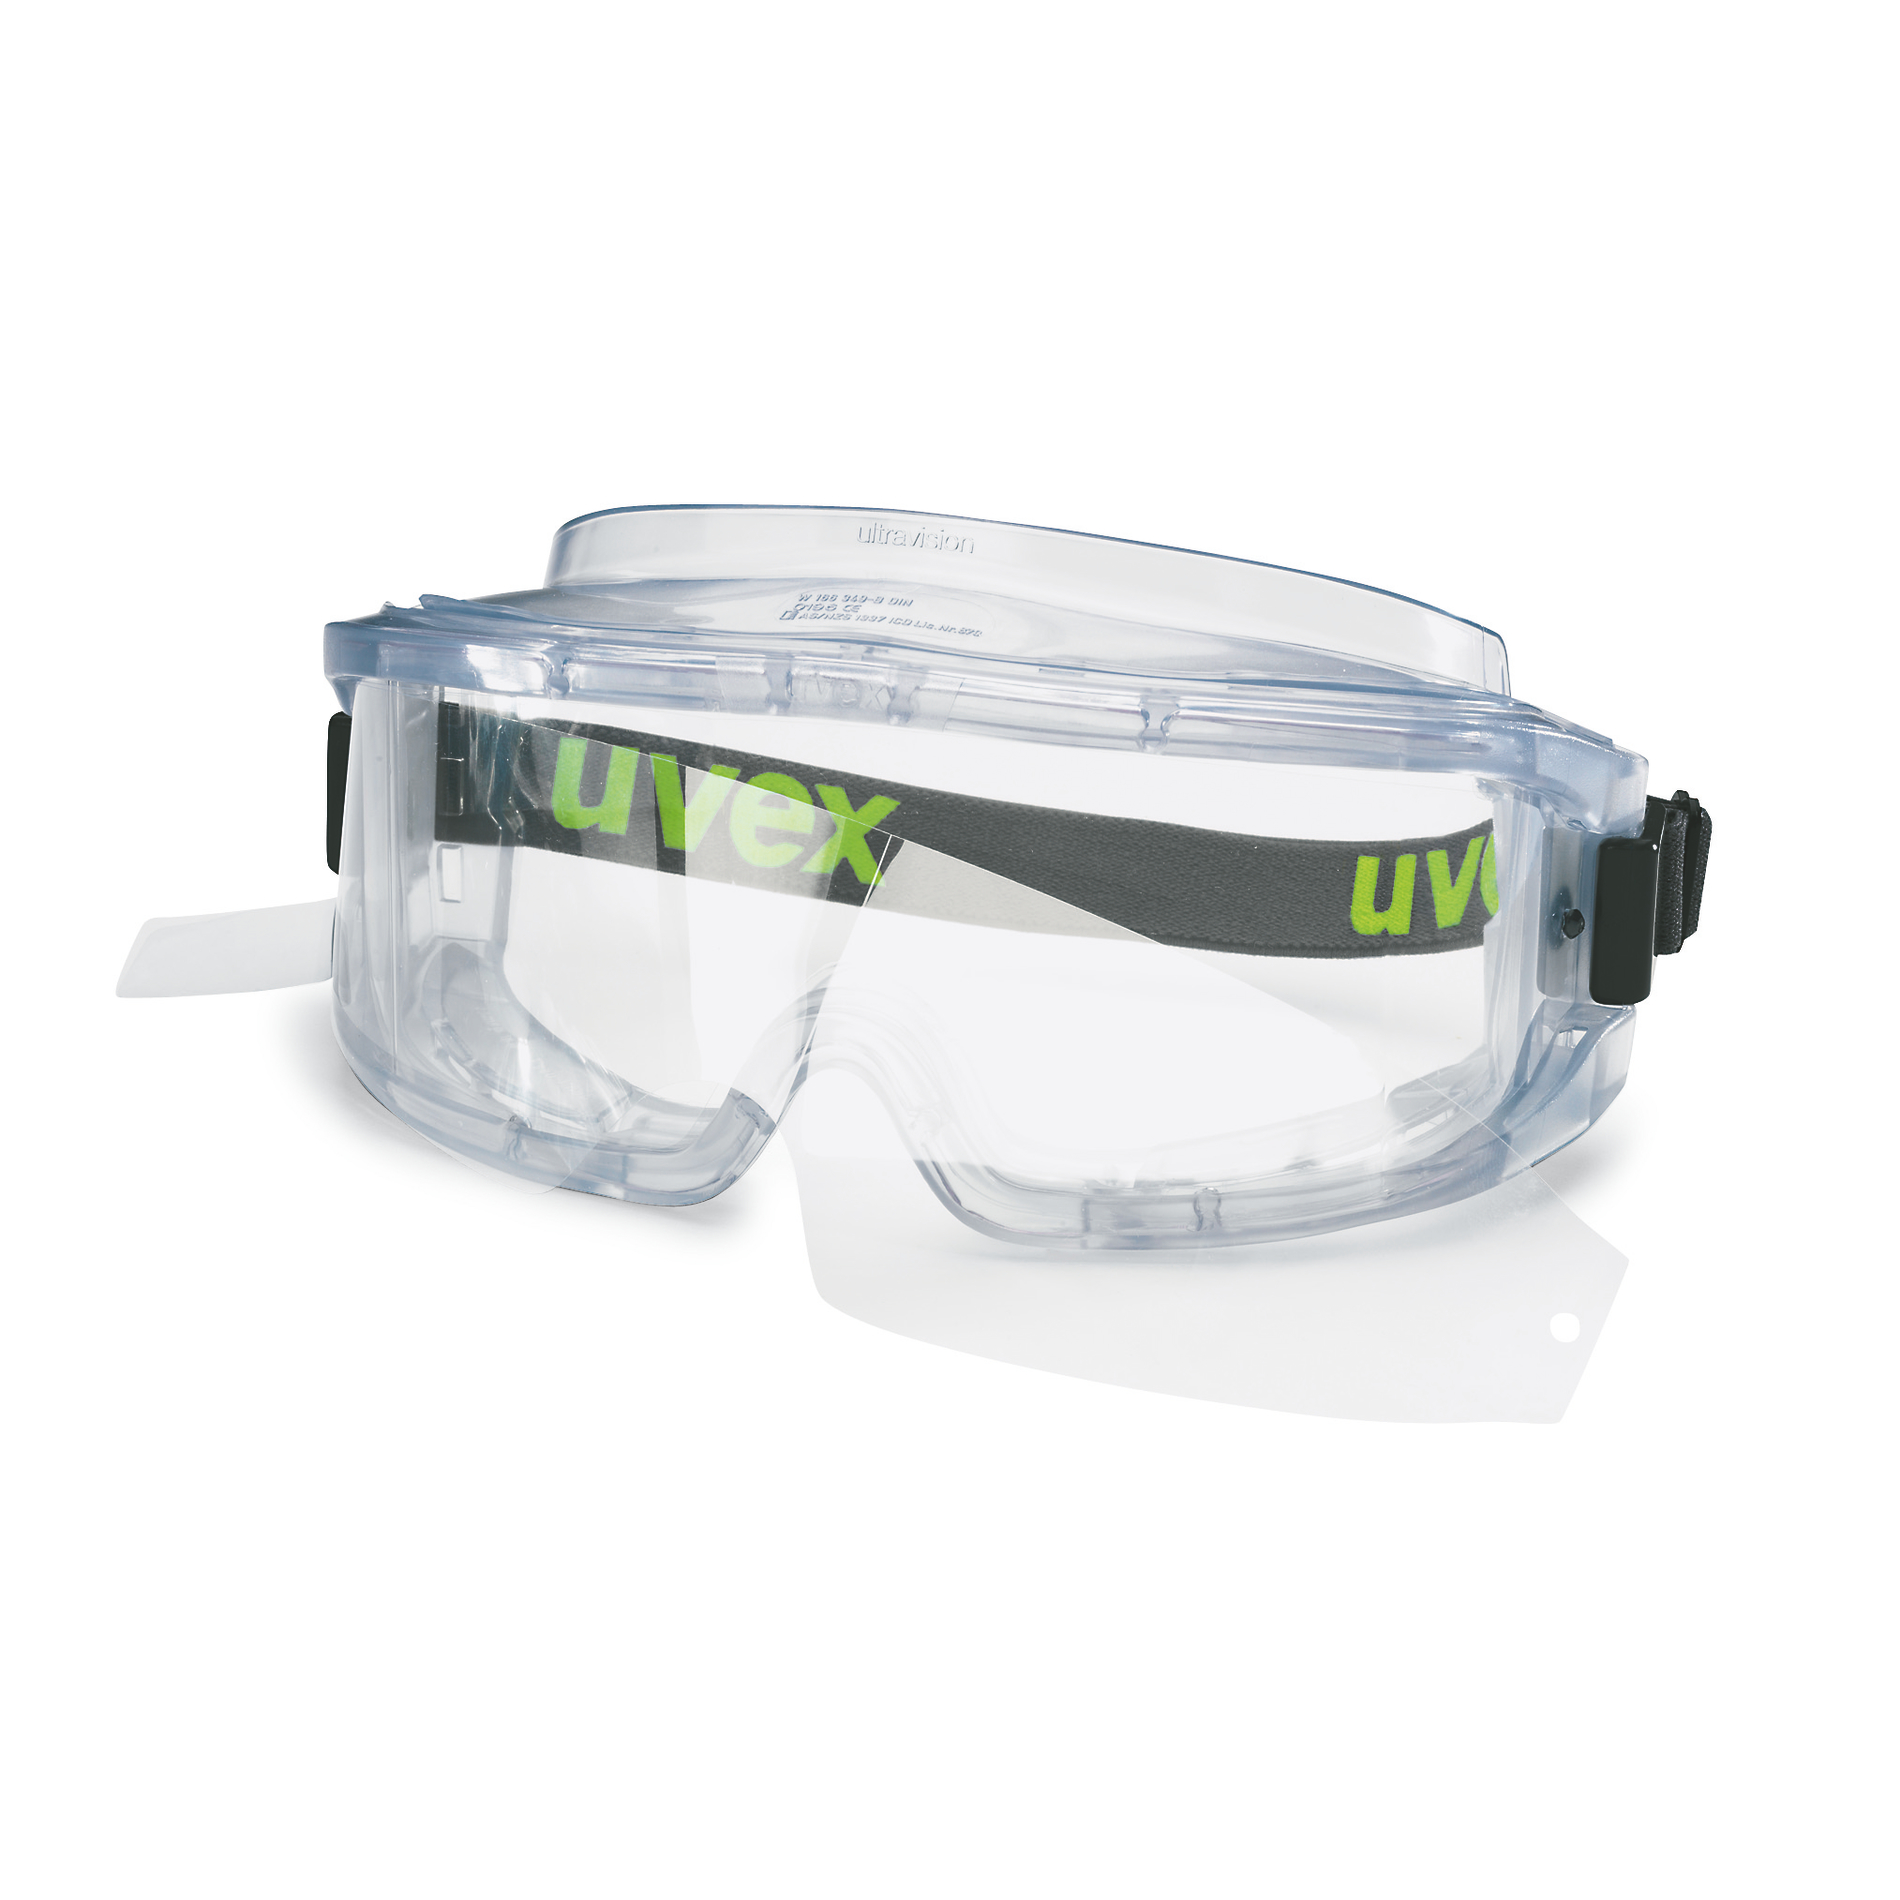 Lunettes de protection panoramiques uvex ultravision   Protection des yeux    uvex safety fdbeee915f9a